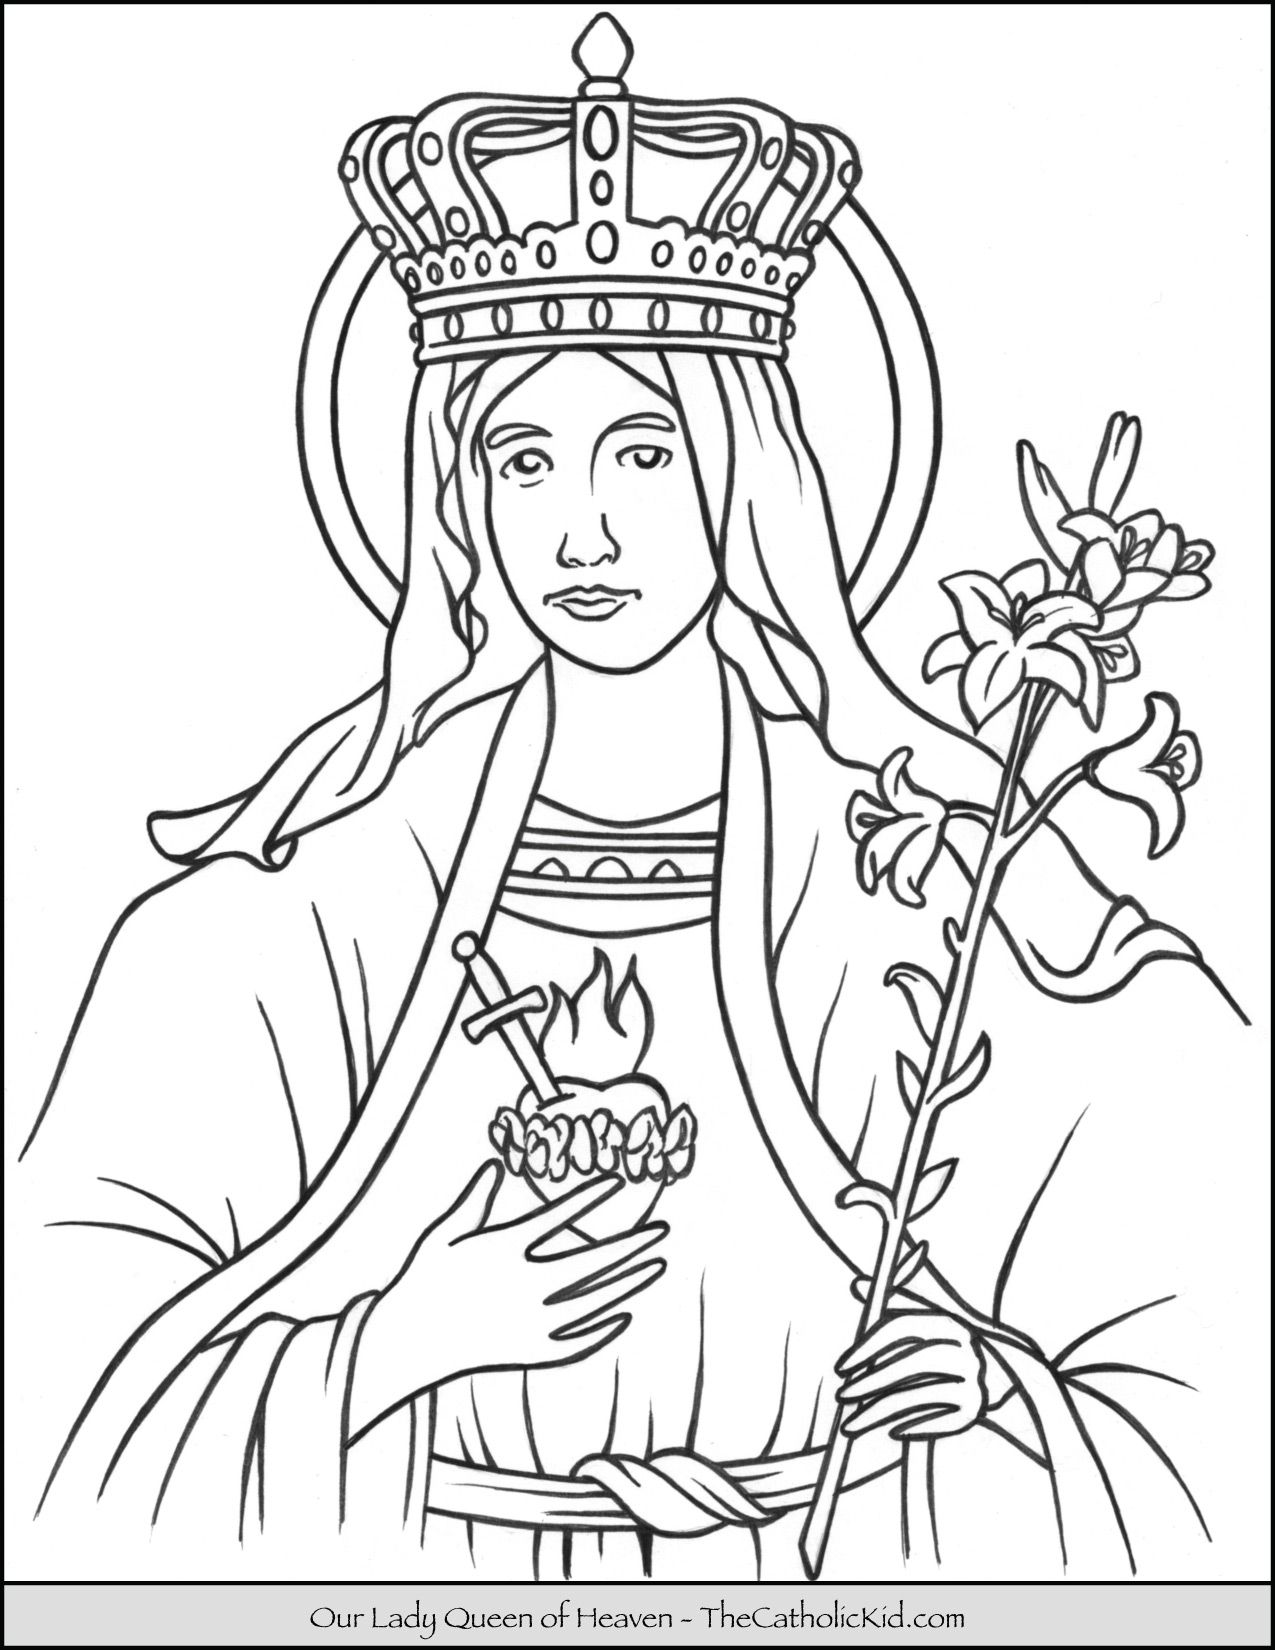 Our Lady Queen Of Heaven Coloring Page Thecatholickid Com